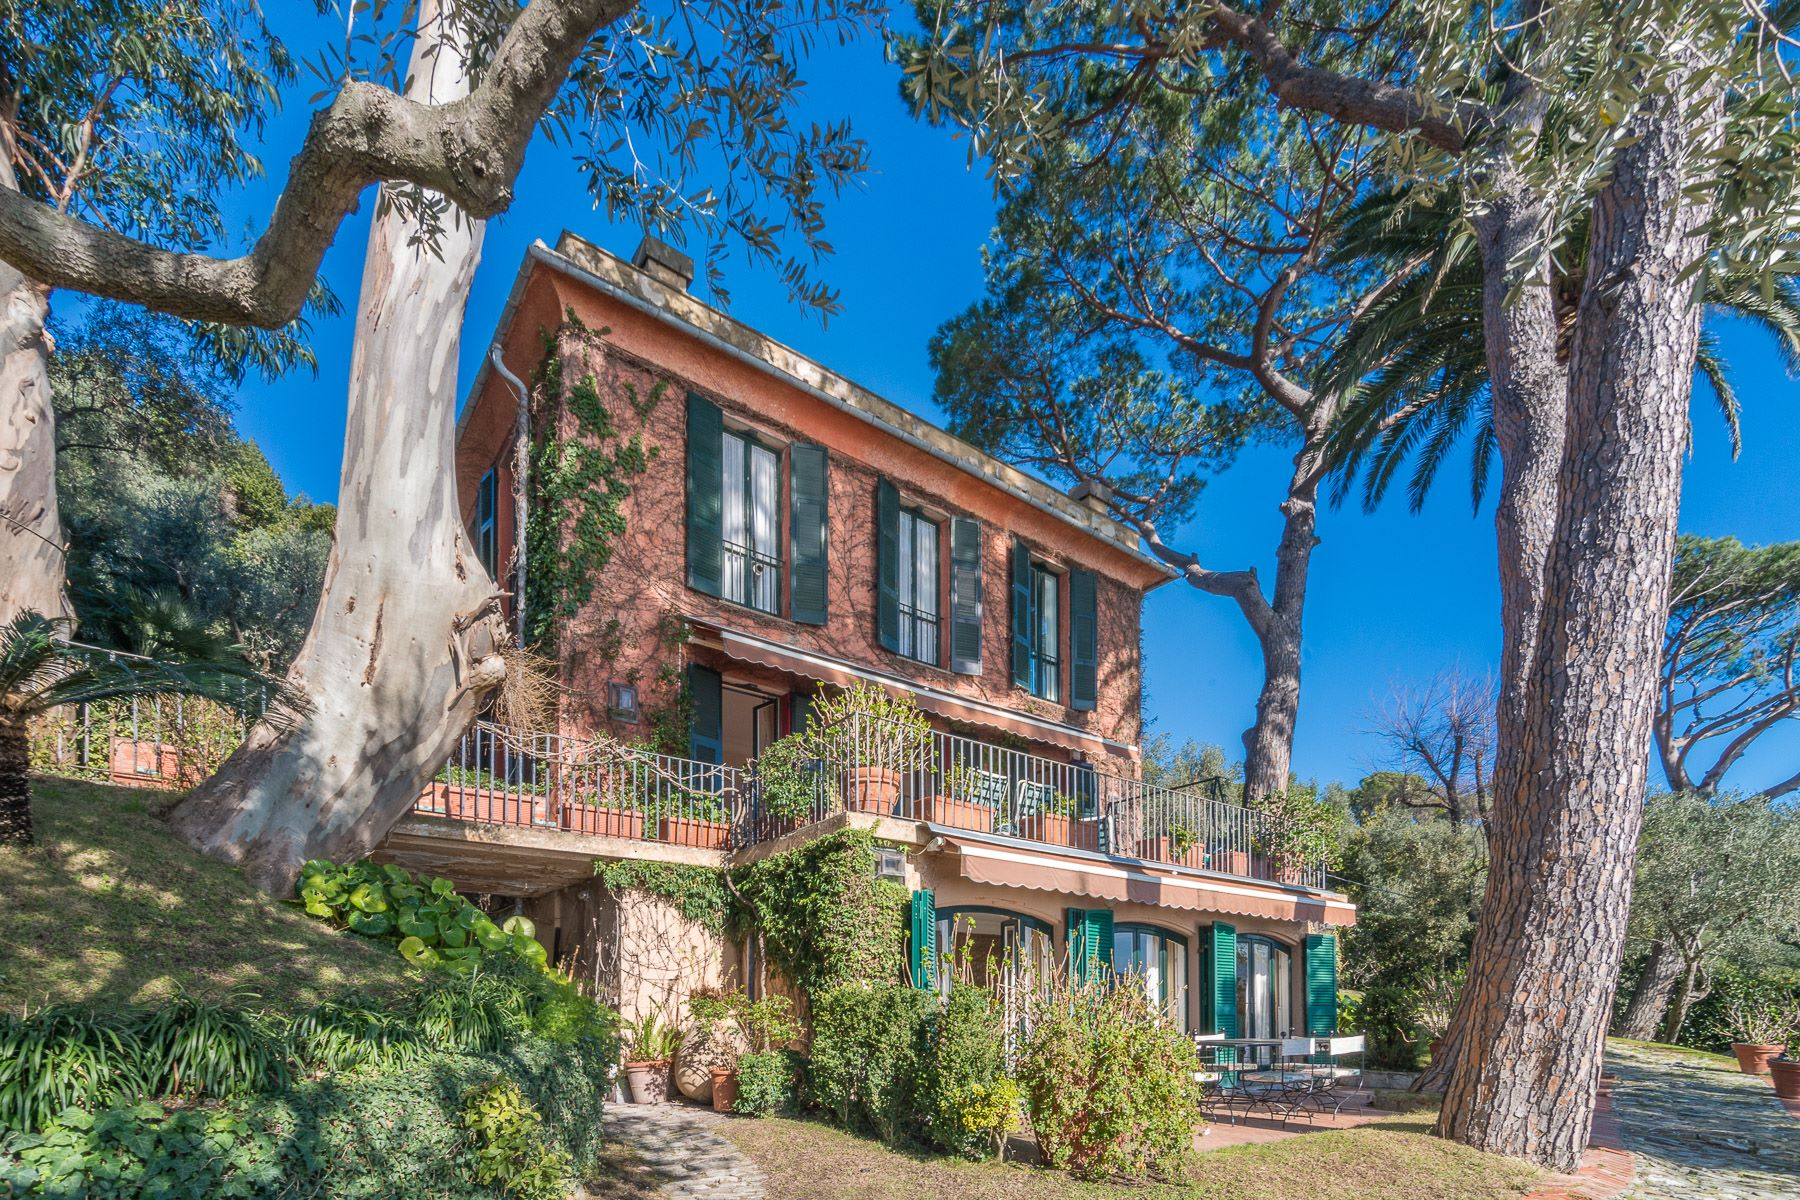 Single Family Home for Sale at Majestic villa overlooking the Italian Riviera Via Privata Repellini Santa Margherita Ligure, Genoa, 16038 Italy